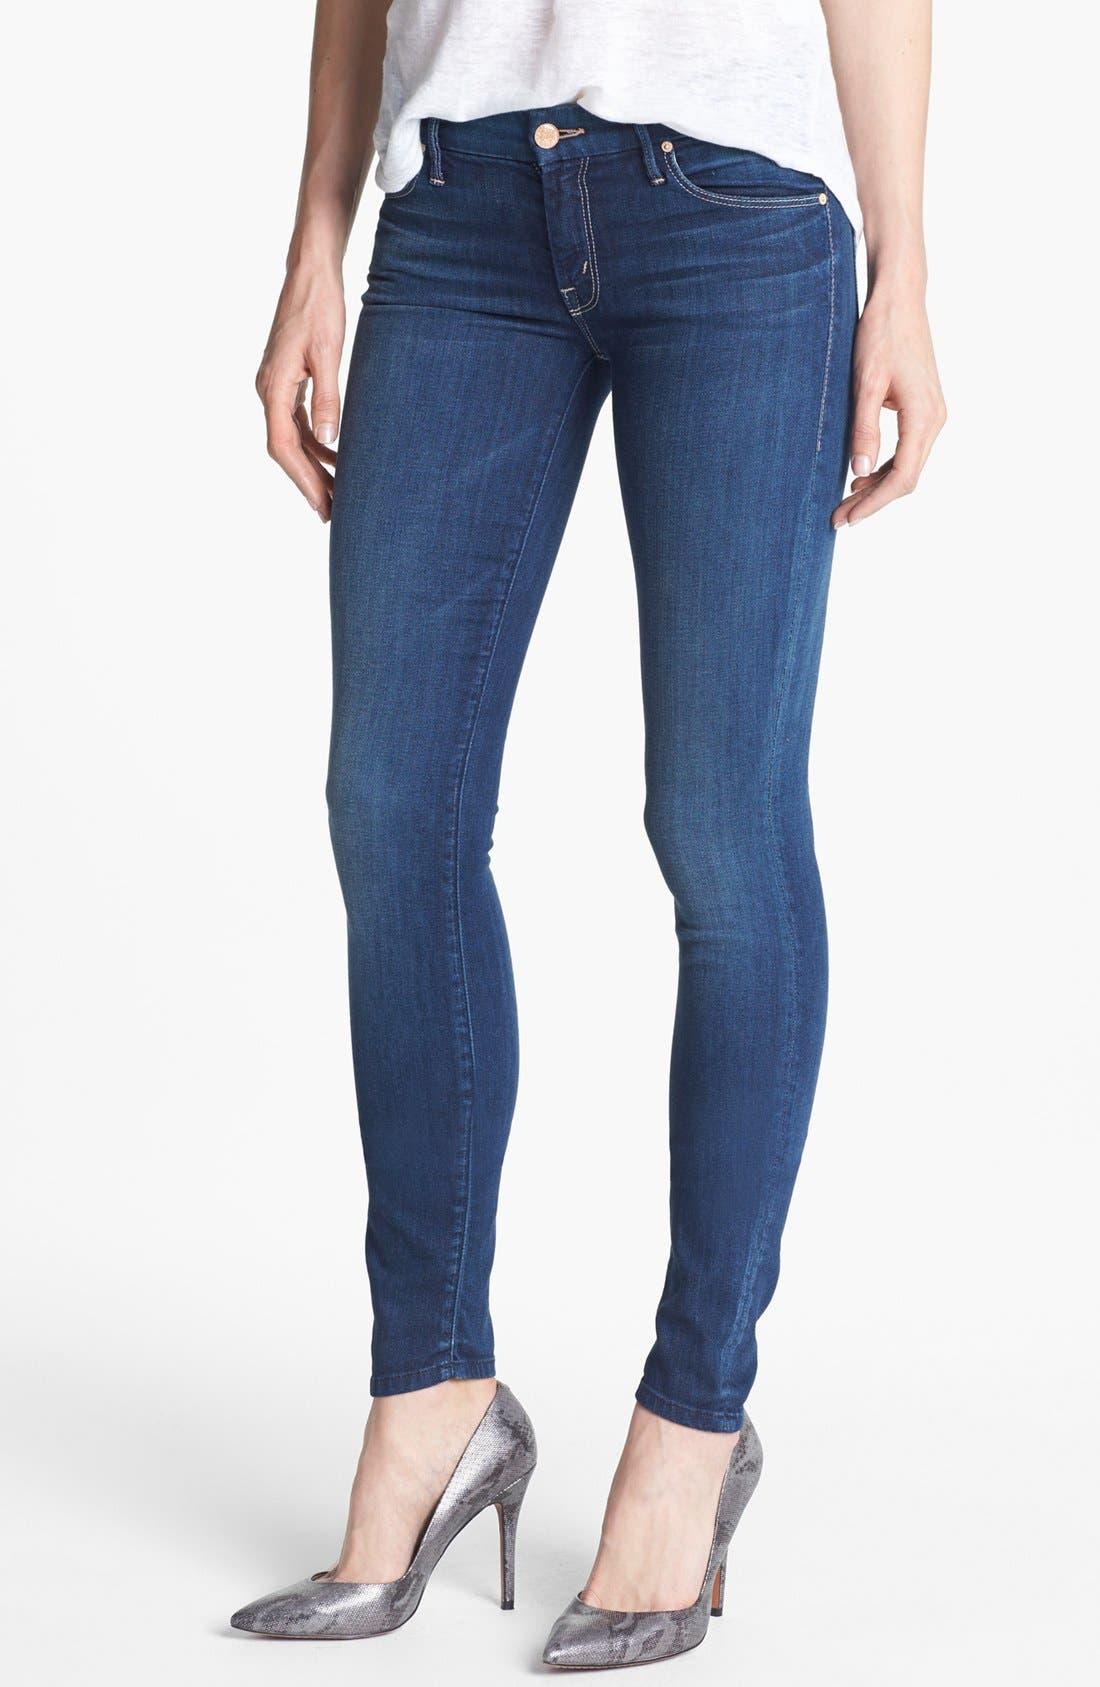 Alternate Image 1 Selected - MOTHER 'The Looker' Skinny Stretch Jeans (Sea of Secrets)